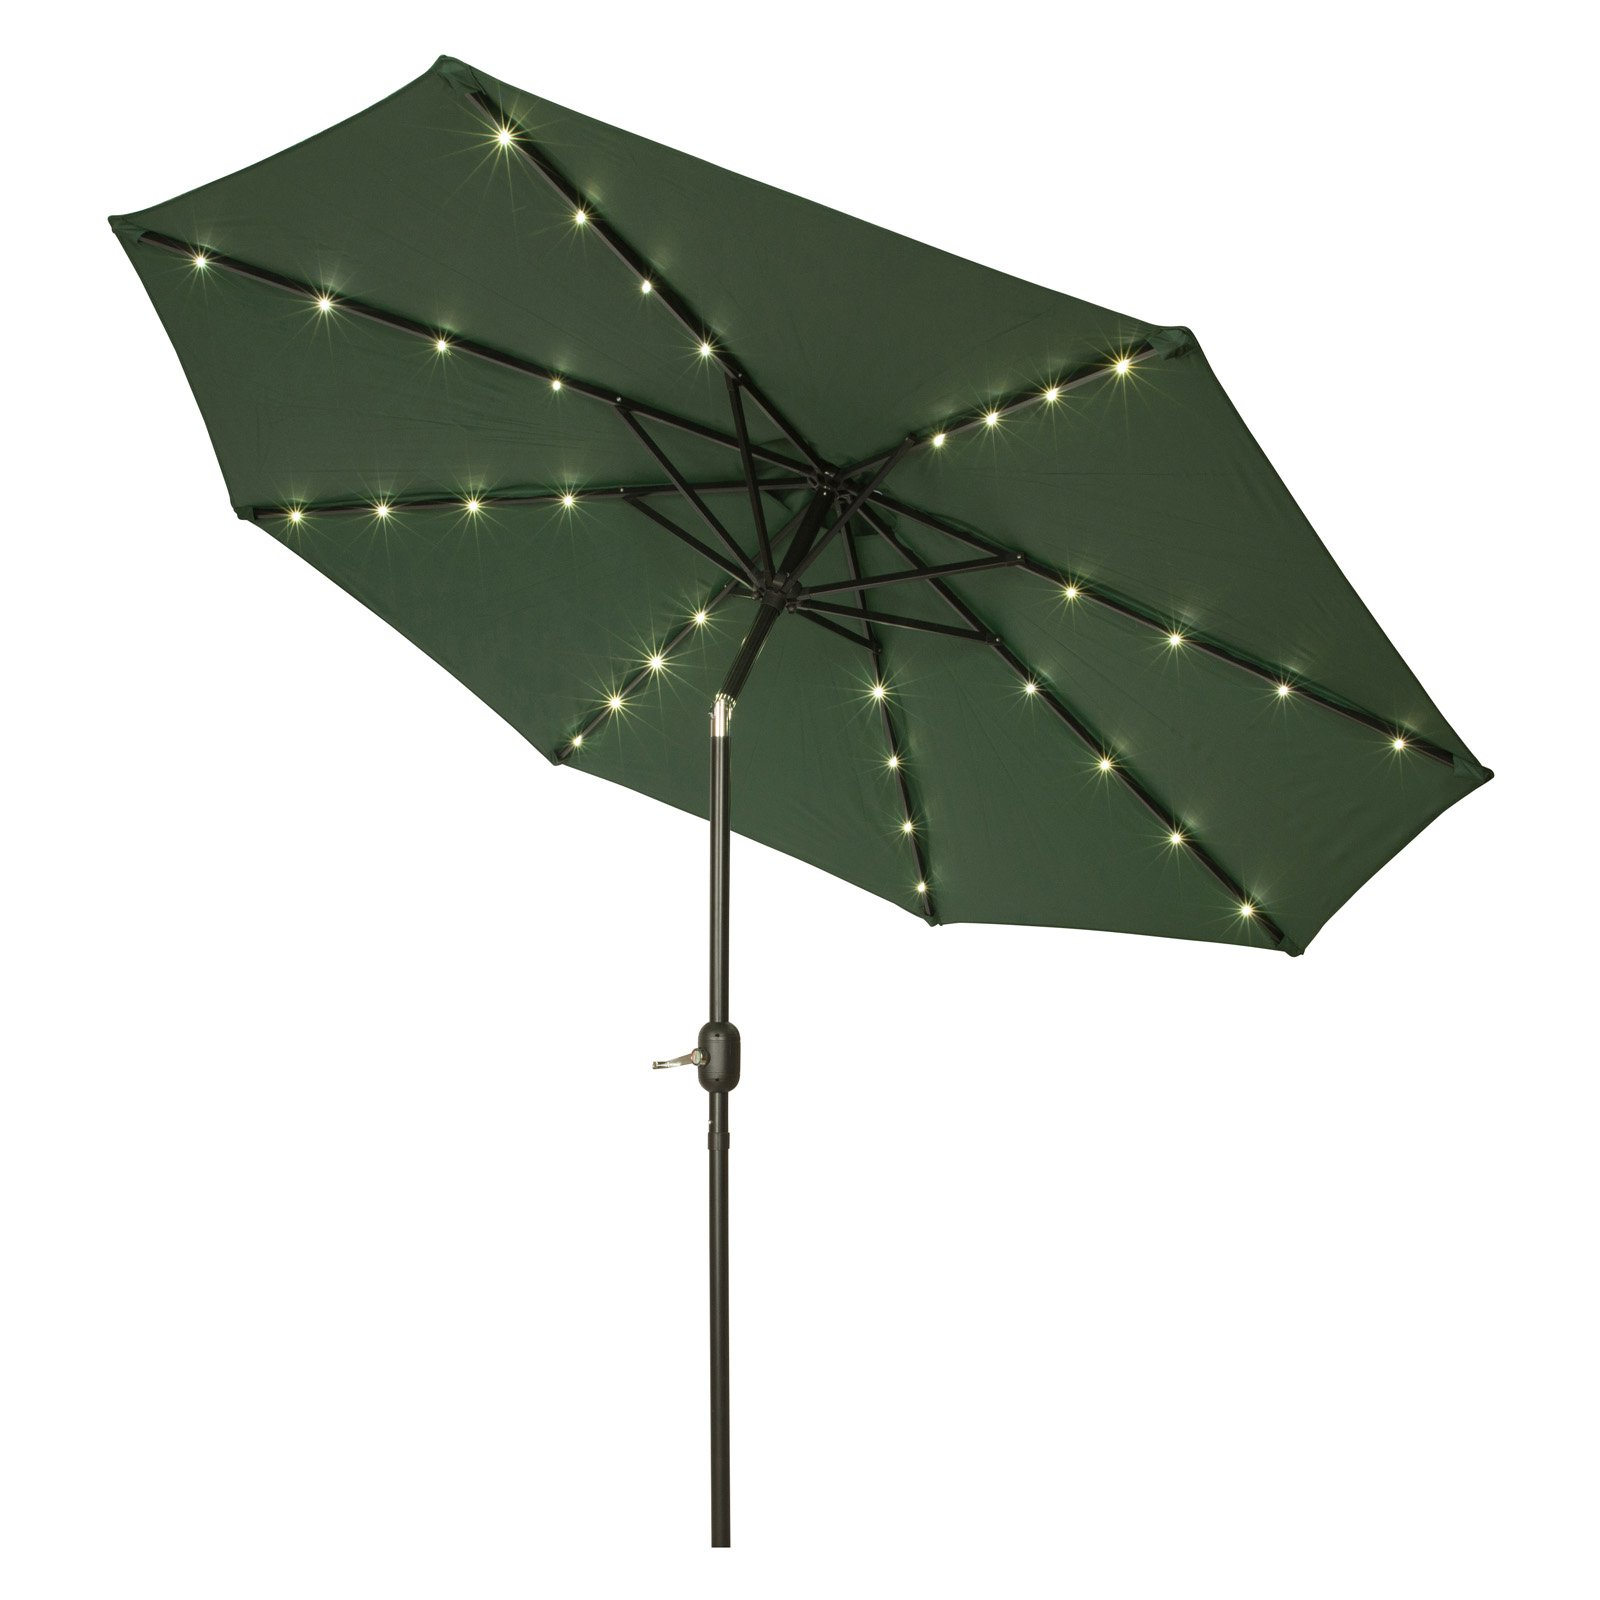 Woll Lighted Market Umbrellas Within Most Recently Released 9' Deluxe Solar Powered Led Lighted Patio Umbrella, Tan (View 20 of 20)